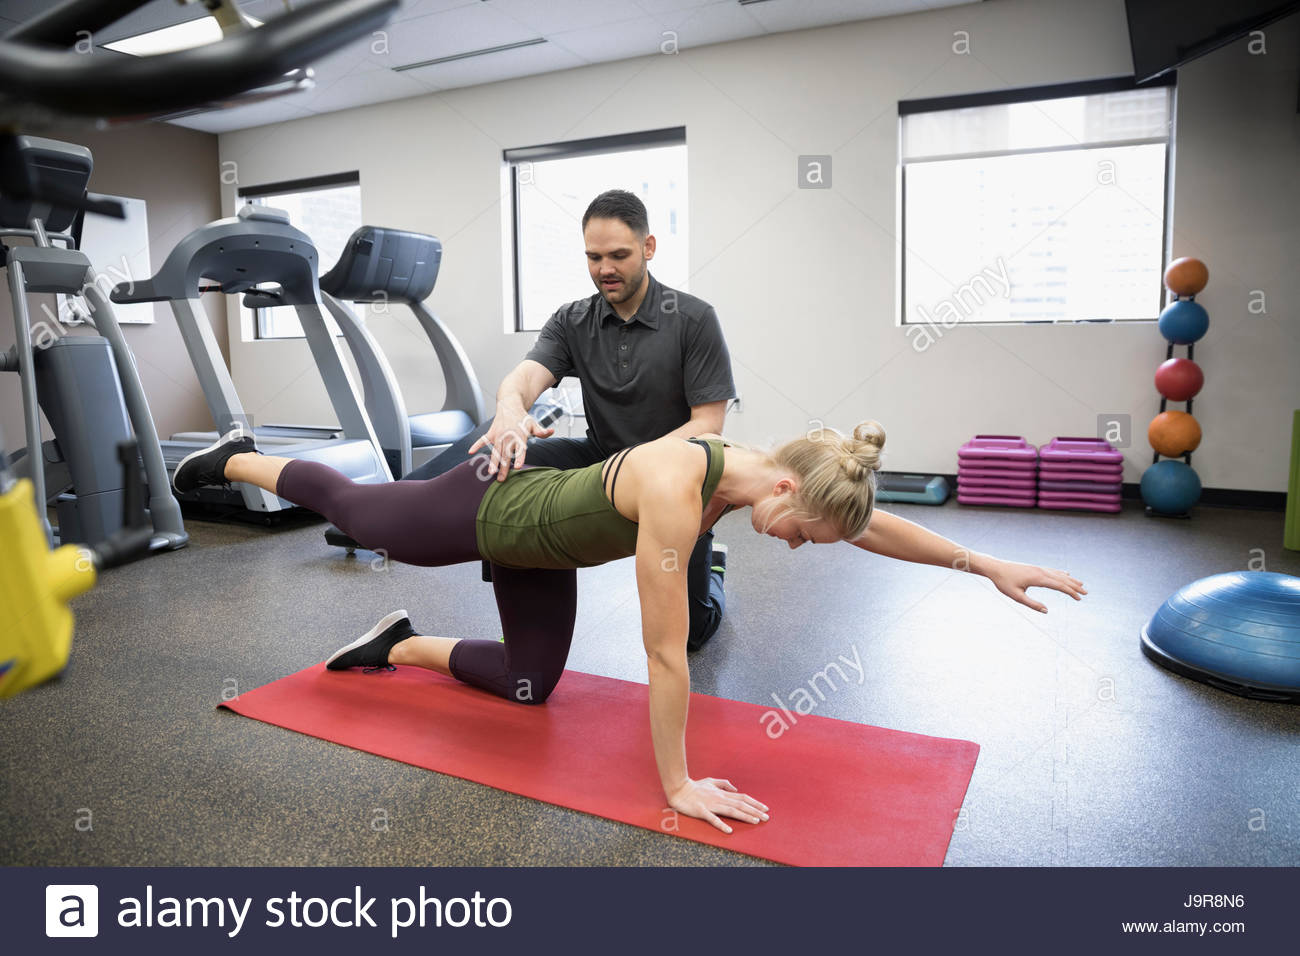 Male physiotherapist helping female client stretching in clinic gym - Stock Image